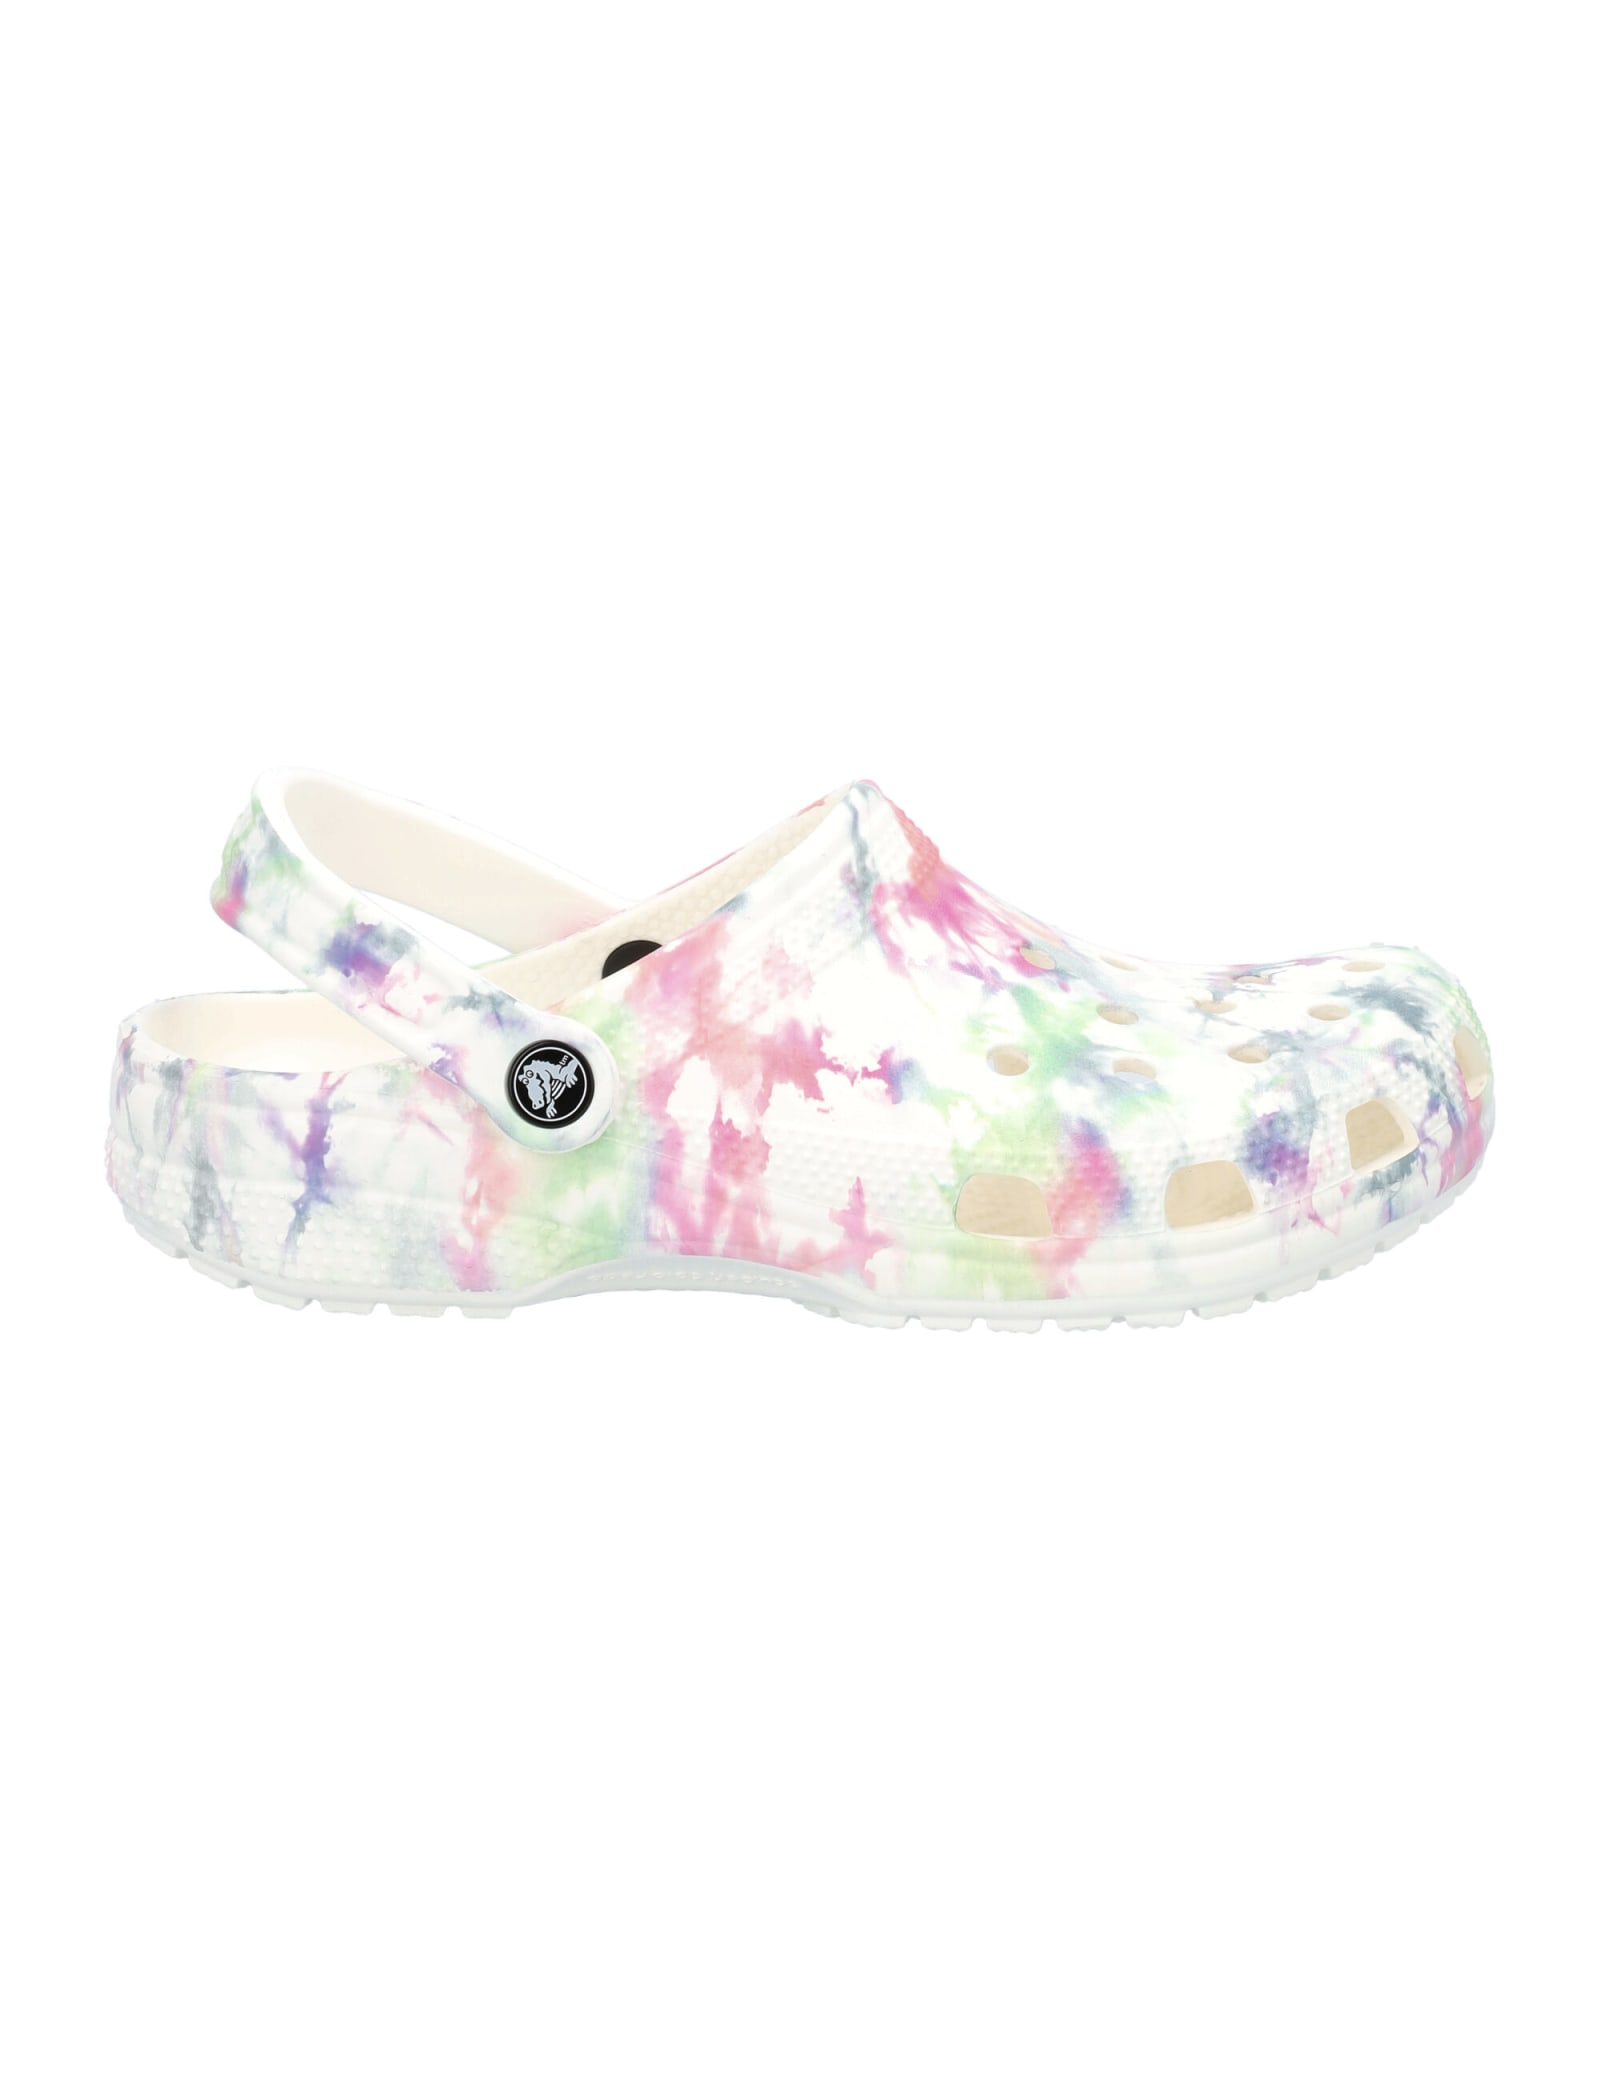 Classic Bleached Tie Dye Clog